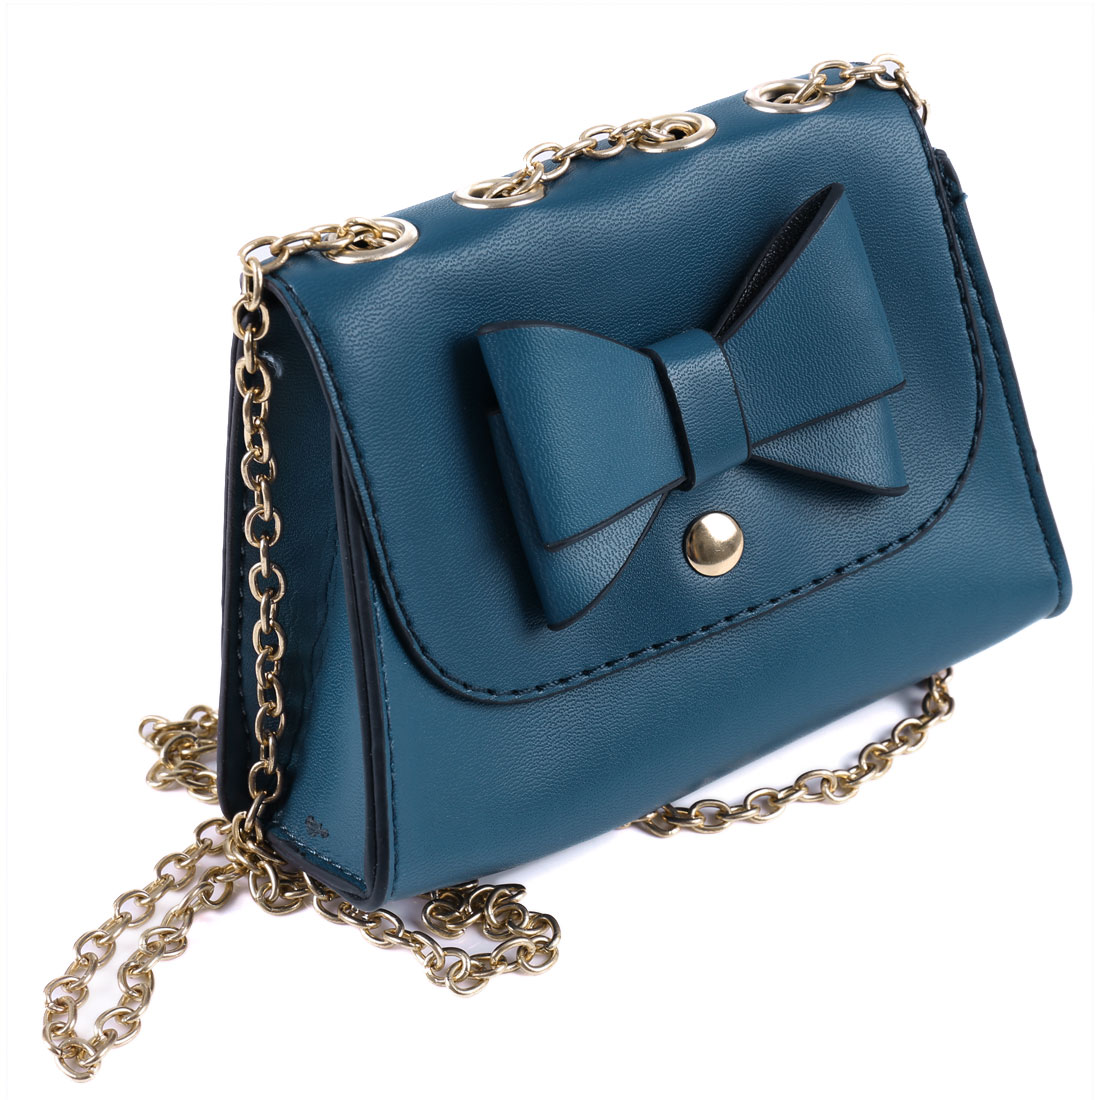 Woman Teal Blue Bowknot Decor Faux Leather Magnetic Flap Closure Shoulder Bag